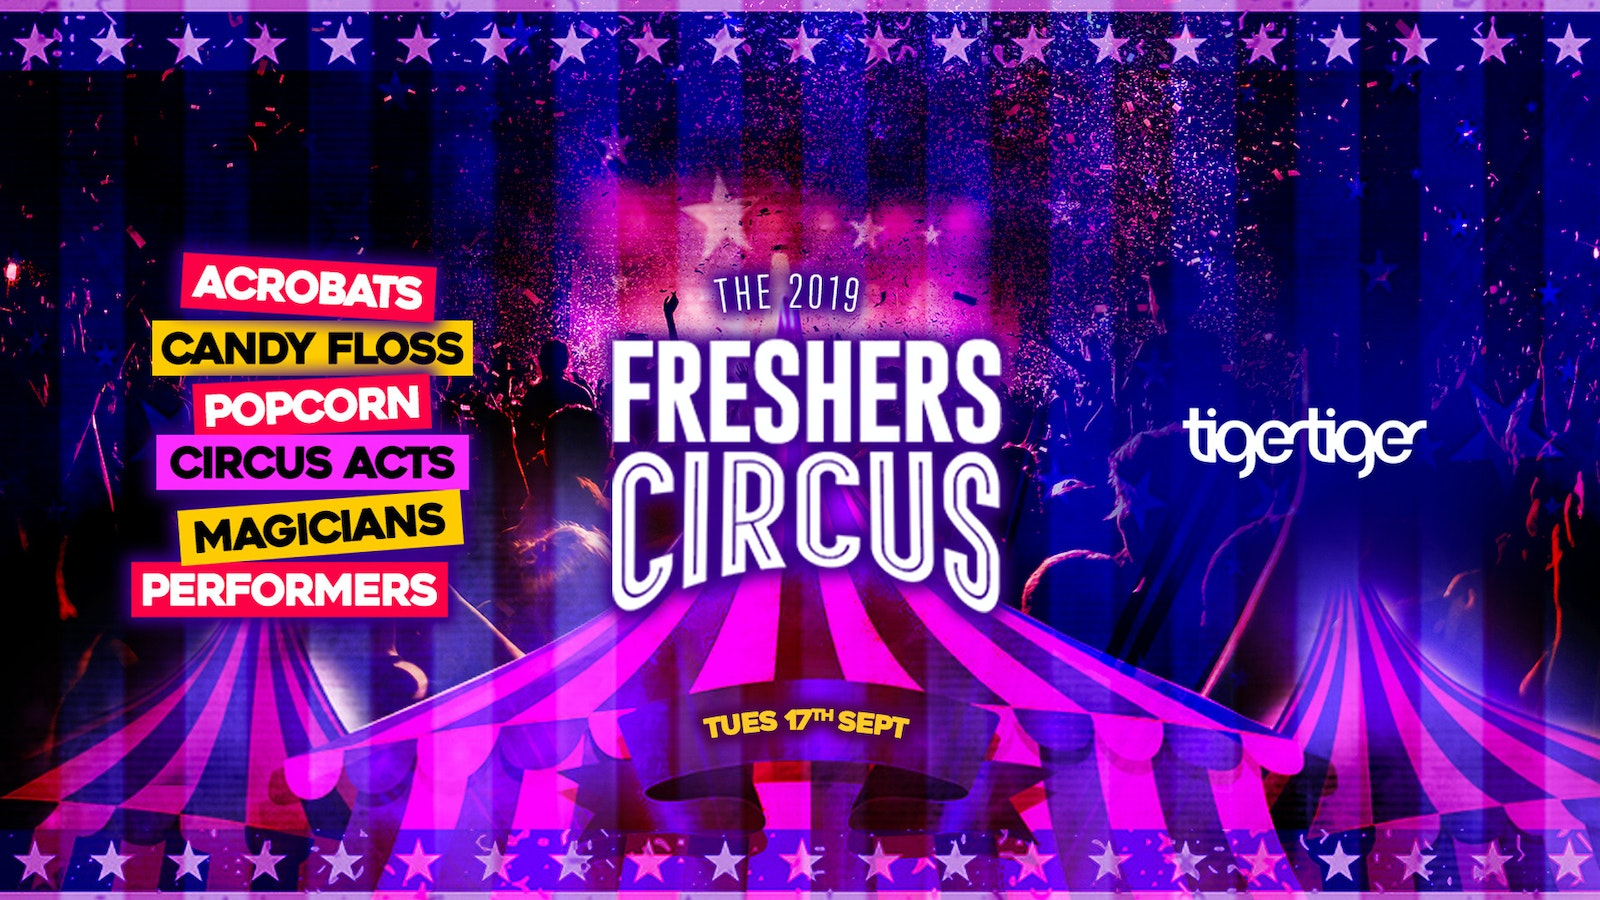 THE 2019 FRESHERS CIRCUS // TIGER TIGER LONDON